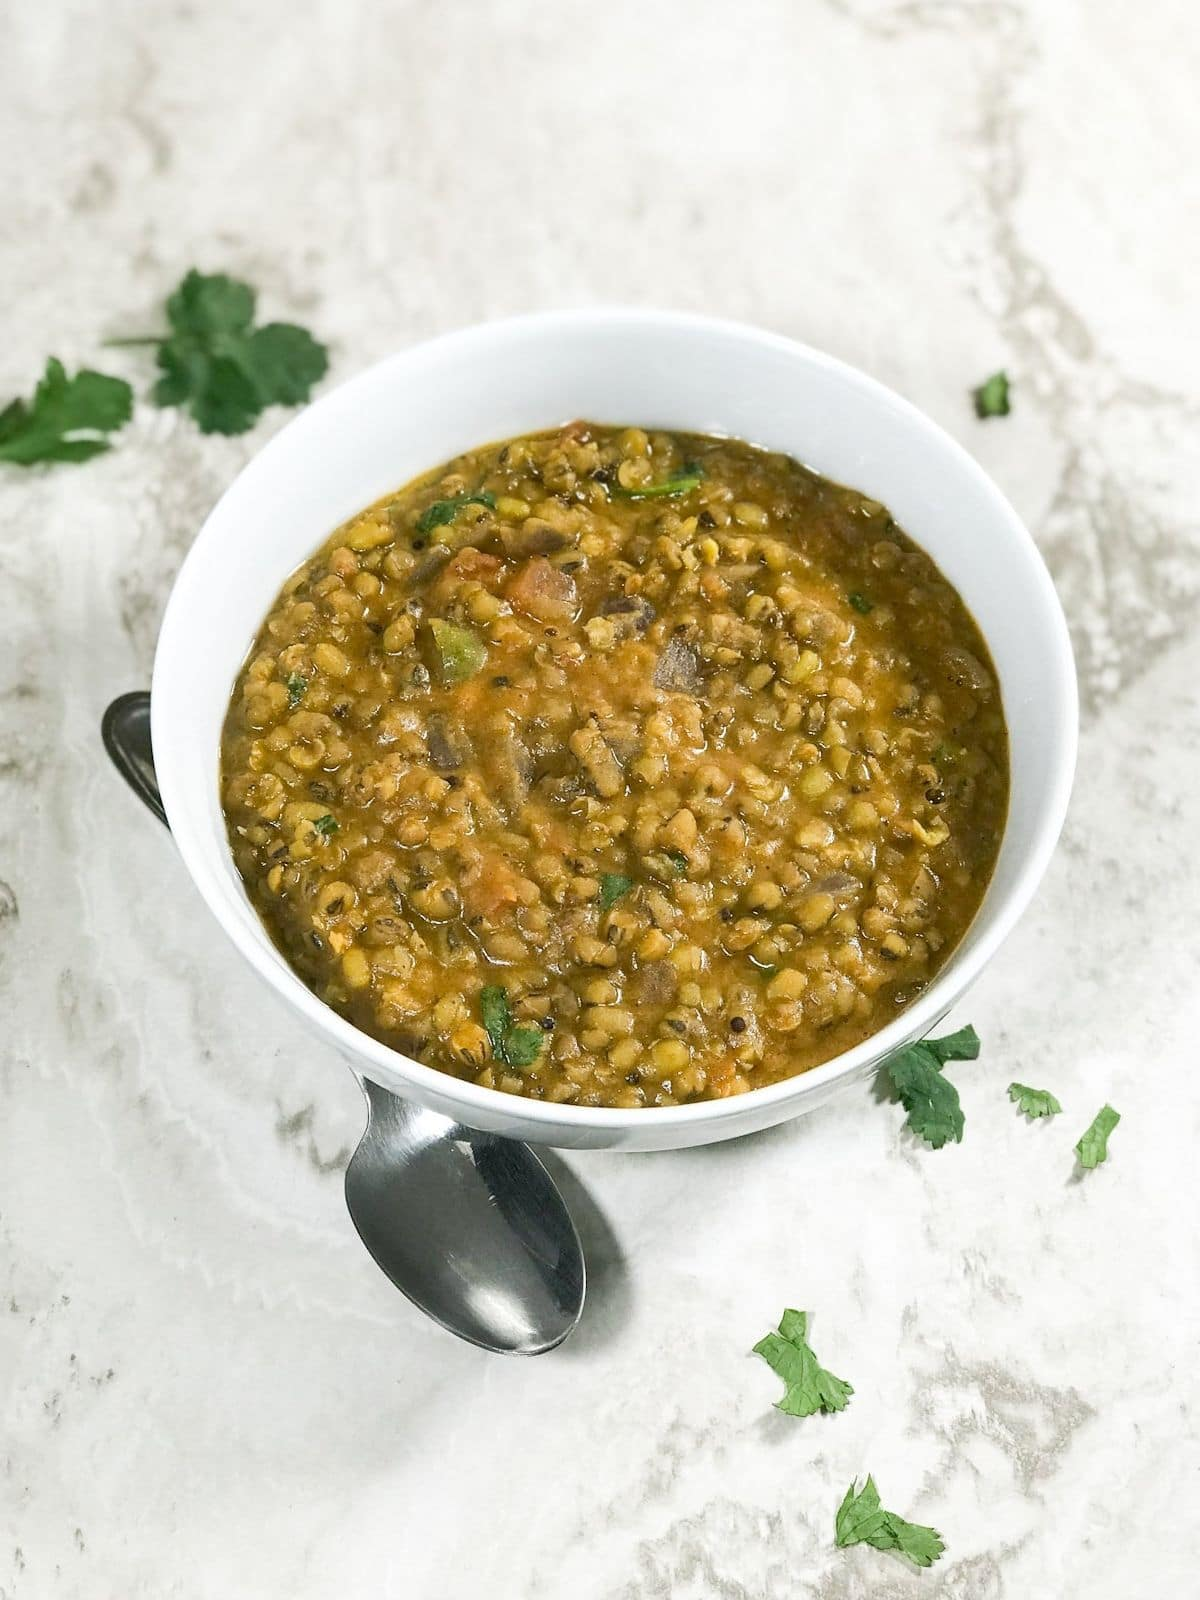 A white bowl is filled with green gram dal on the white table